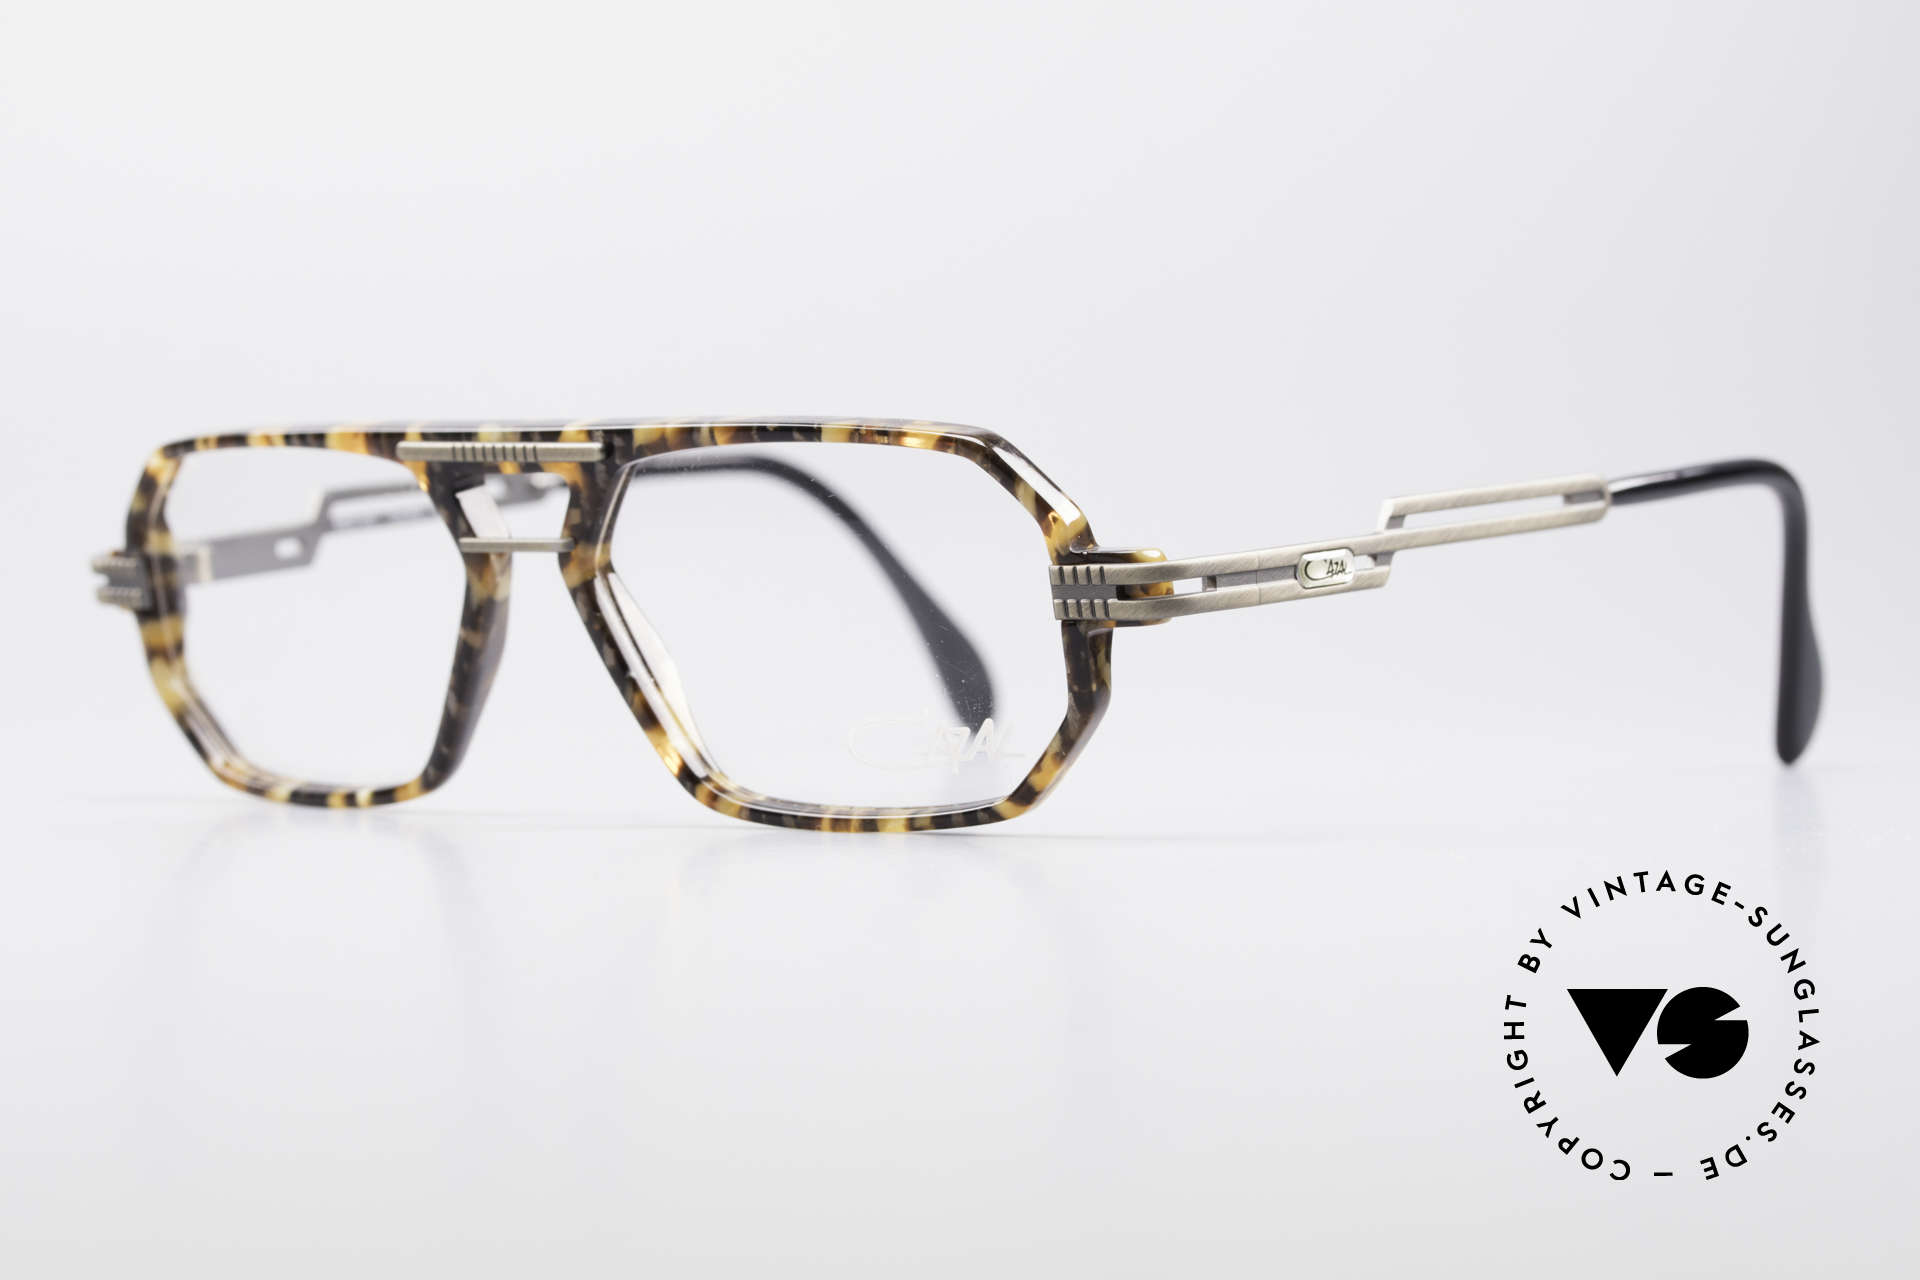 Cazal 651 Rare 90's Vintage Eyeglasses, brushed metal parts on arms and front; 1. class quality, Made for Men